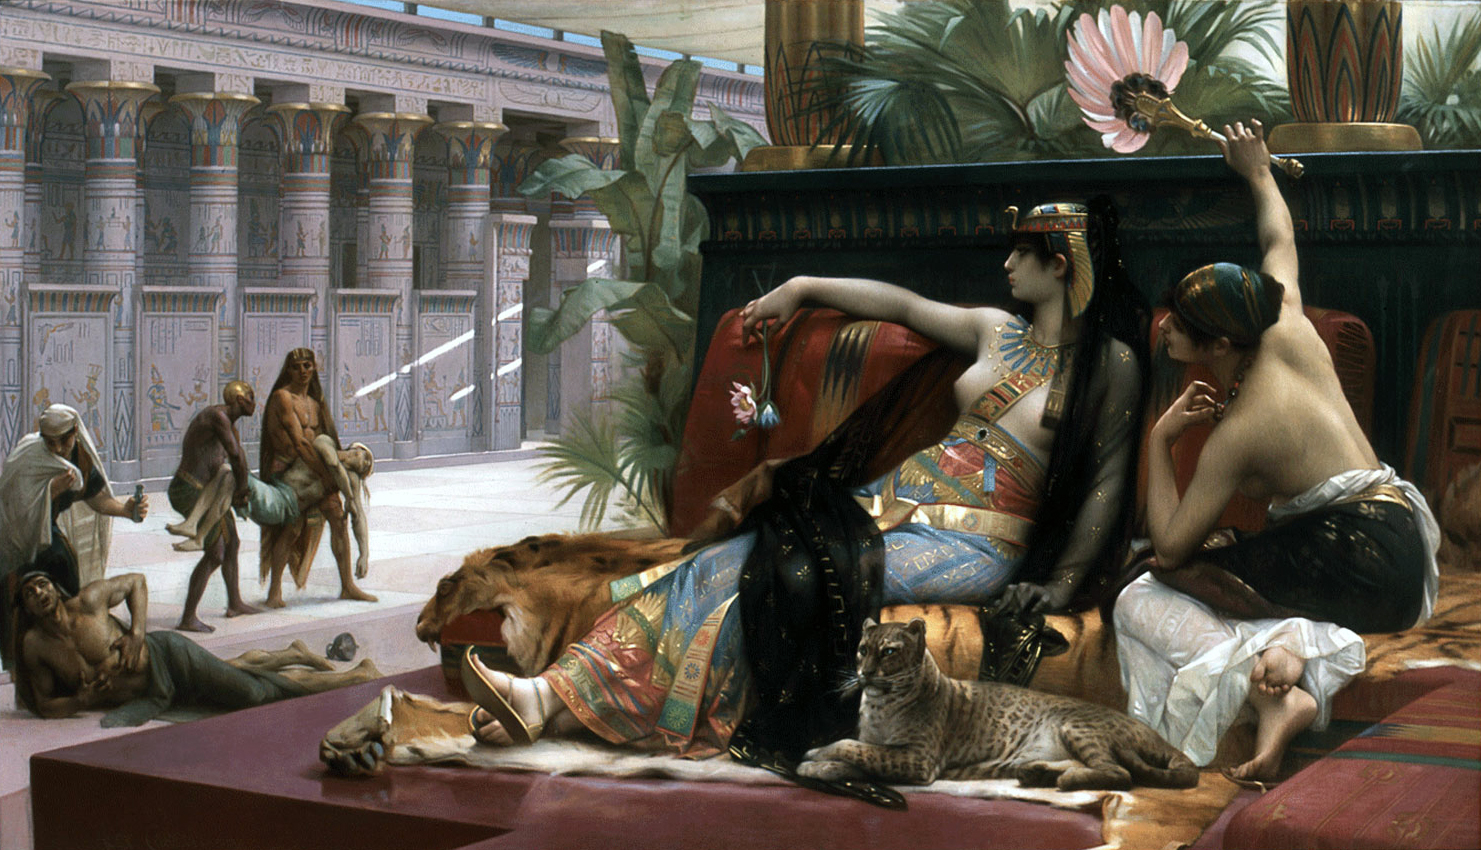 Cabanel, Alexandre. Cleopatra Testing Poisons on Condemned Prisoners. Antwerp, Belgium. Royal Museum of Fine Arts, 1887. Oil on canvas.